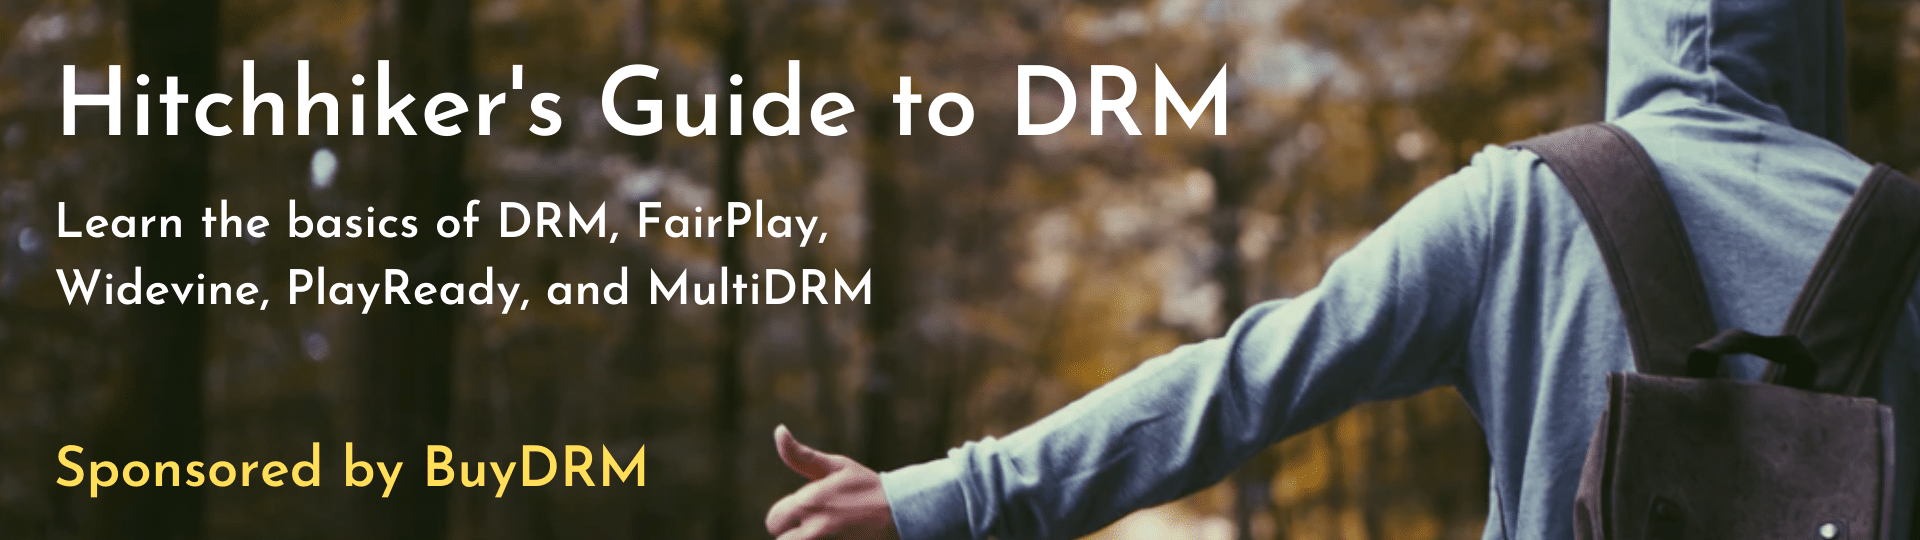 hitchhiker-guide-to-drm-ad